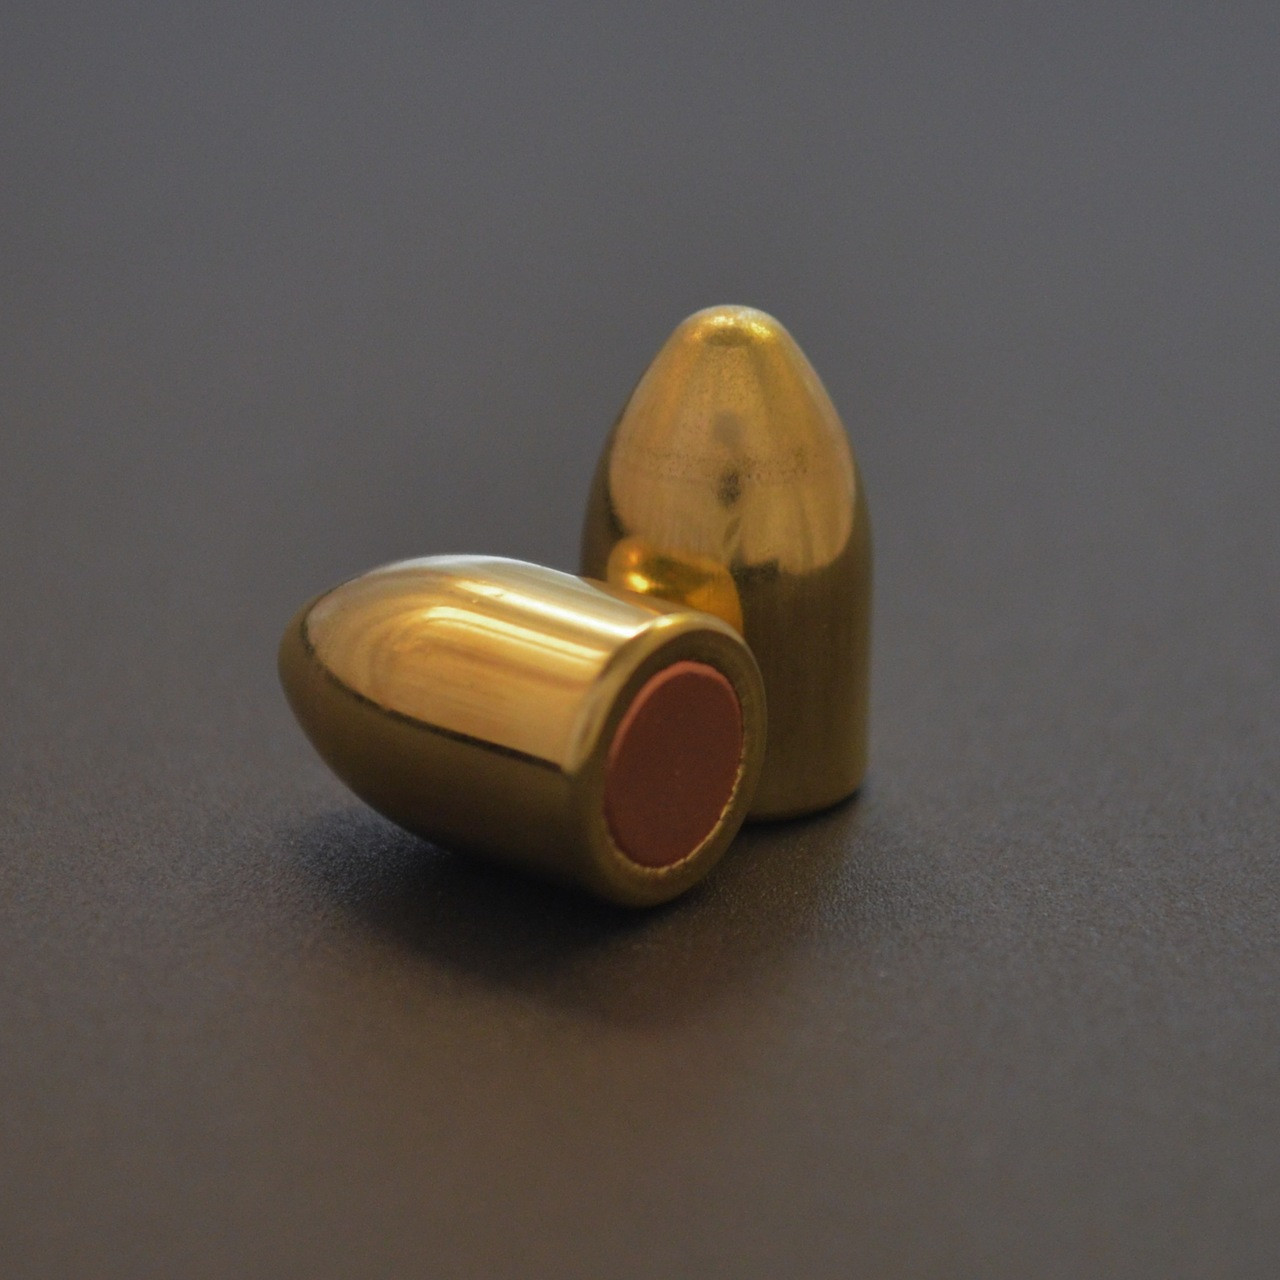 9mm/124gr CMJ -100ct